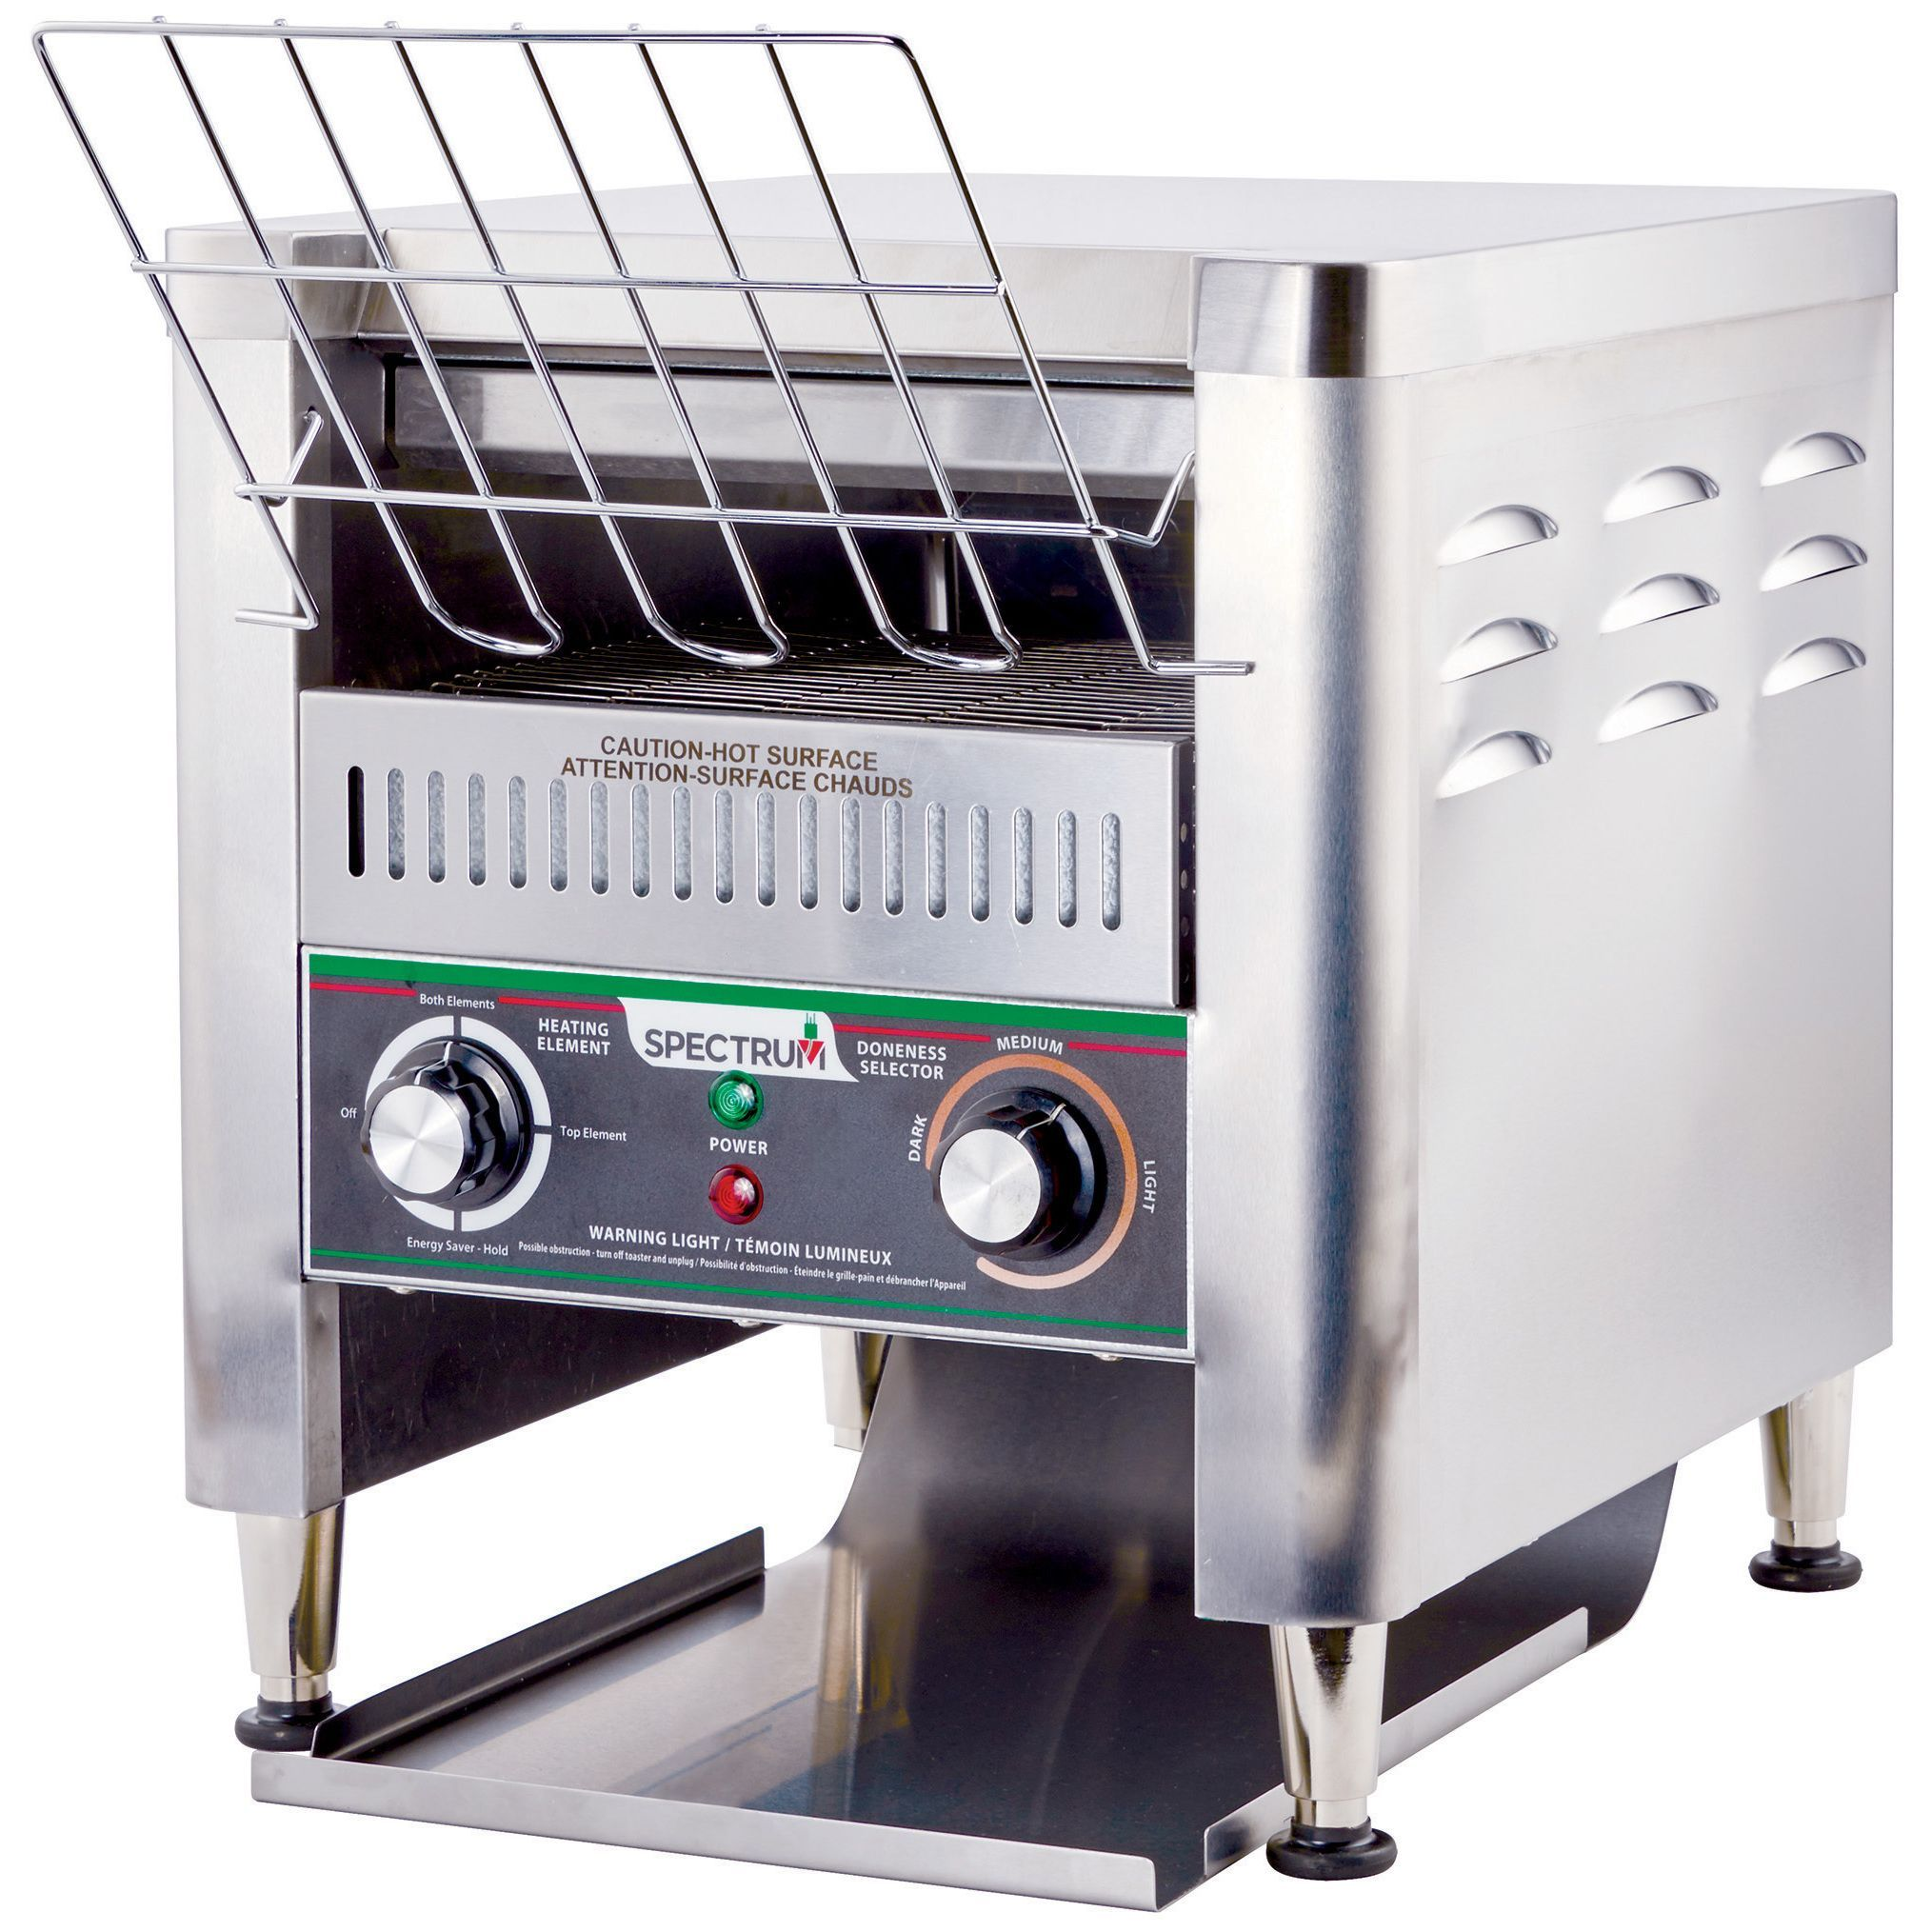 russell toastmaster griddle family hobbs uk grill amazon amiable home slice brunch satisfying kw esprit commercial of industrial arresting grade favorable slot kitchen gratifying sunroom stunning blue co toaster jewels bun bfbngxo memorable size rowlett full cream admirab reviews